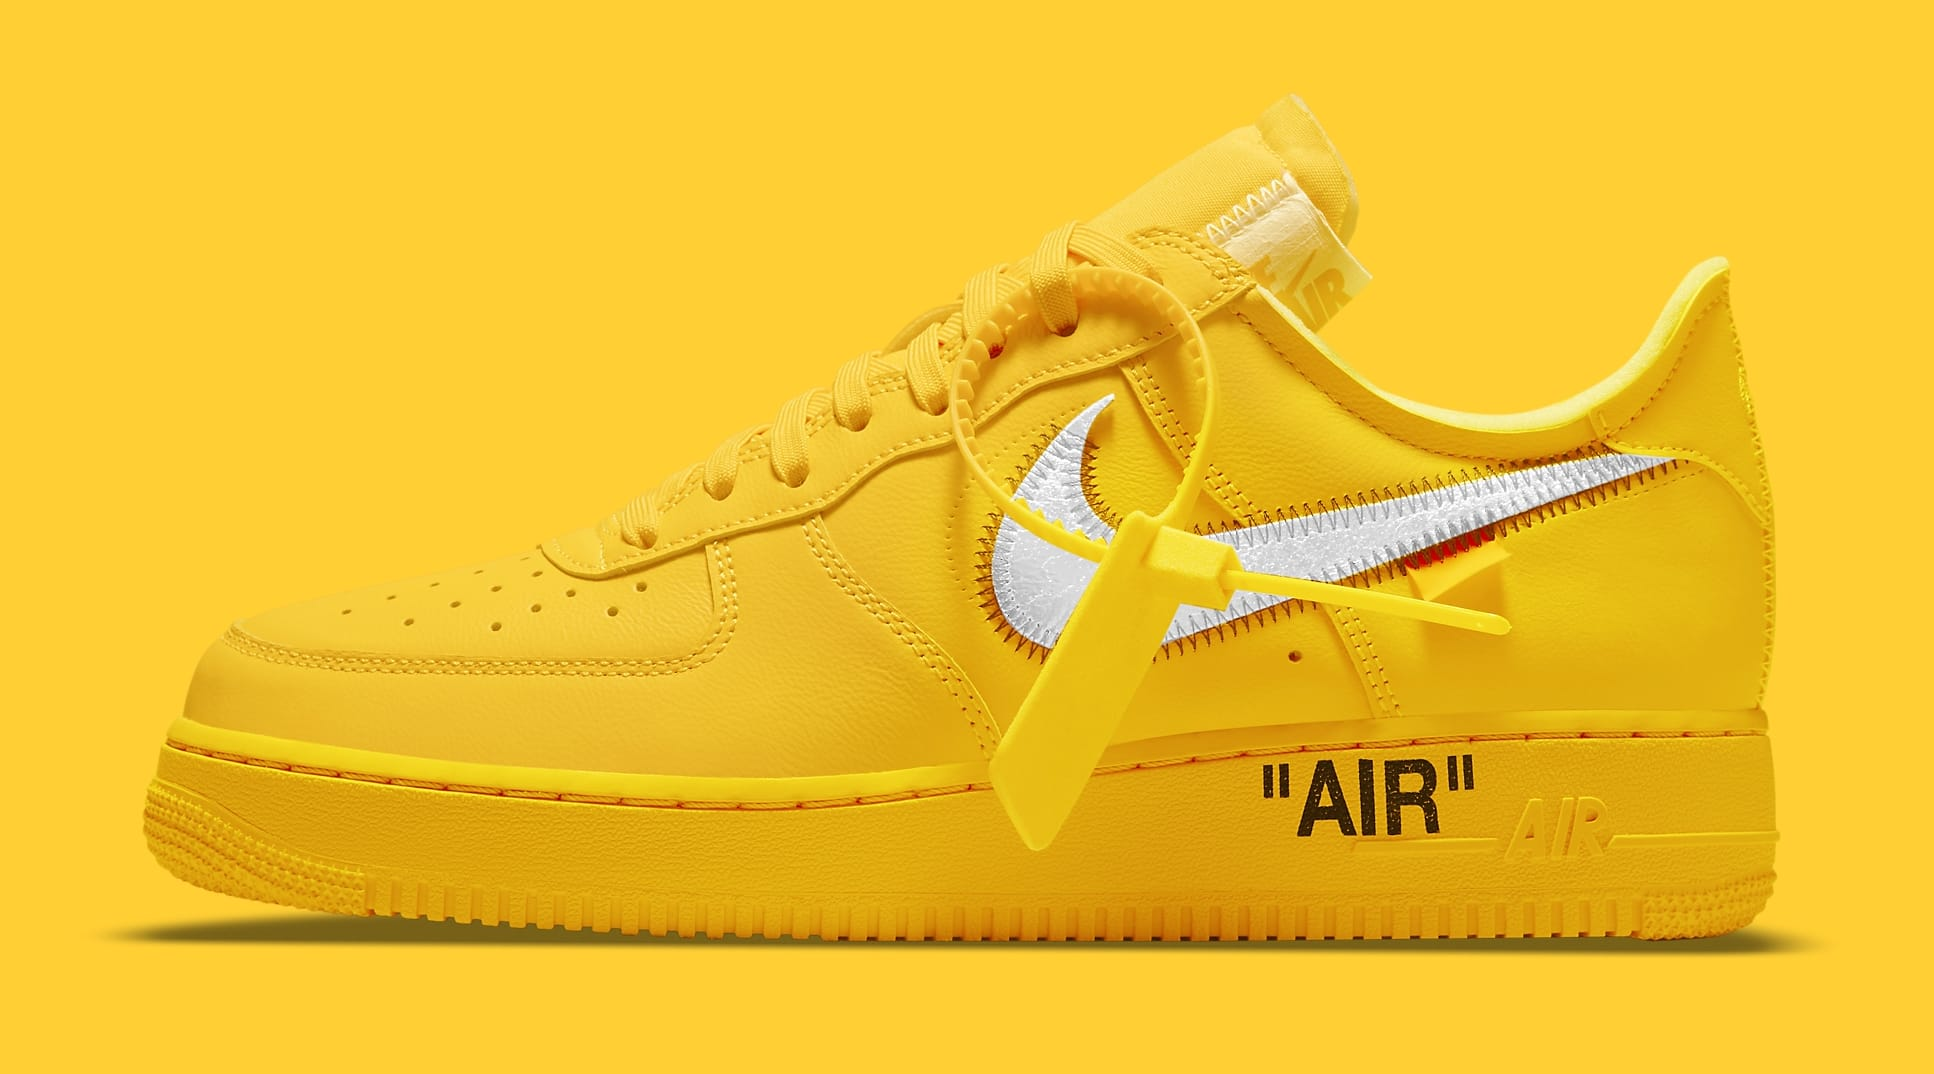 Off-White x Nike Air Force 1 Low 'Lemonade' DD1876-700 Lateral